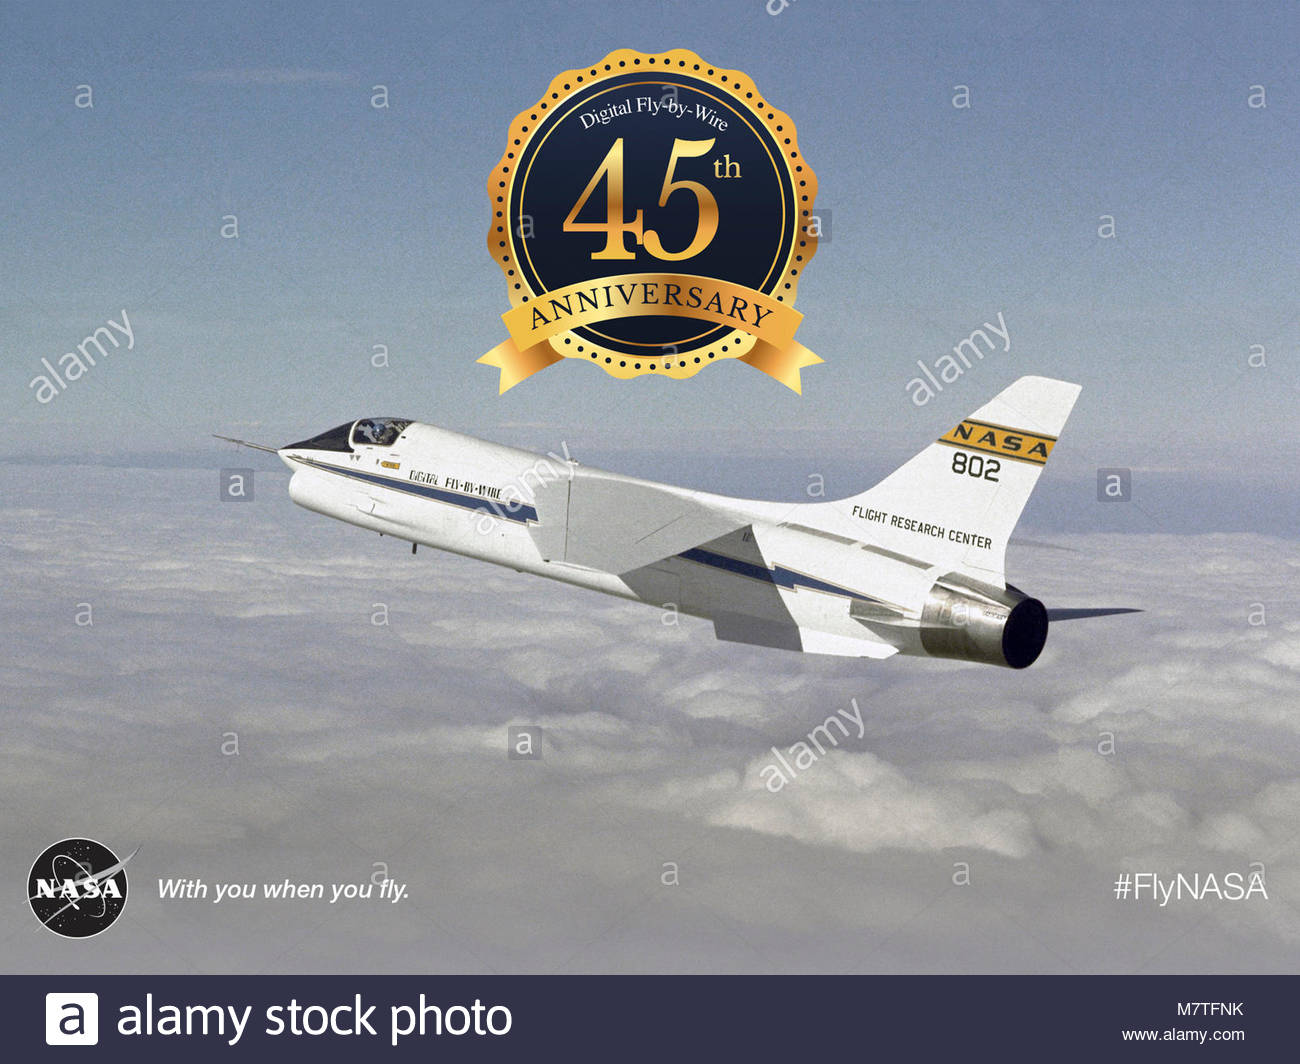 45th Anniversary of the Digital Fly-by-Wire First Flight. The F-8 Digital Fly-By-Wire flight research project validated Stock Photo